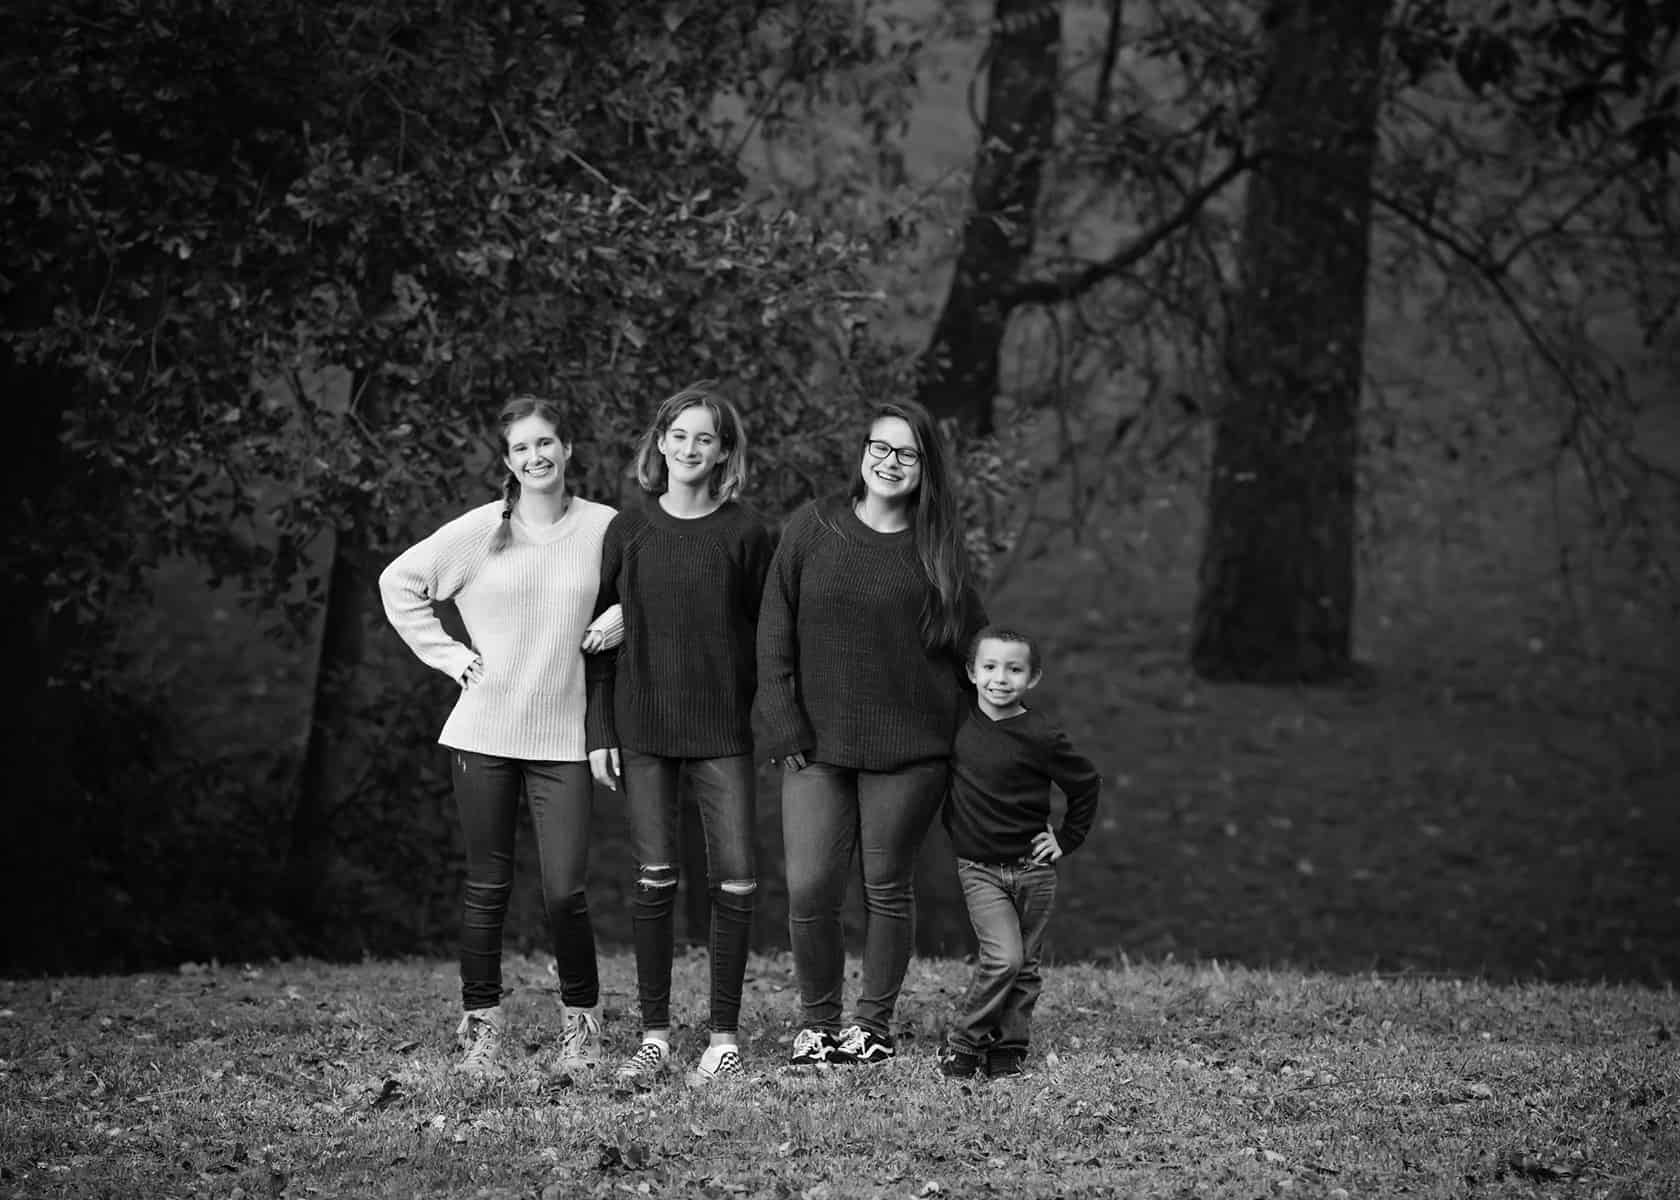 Cousins in the park family photoshoot in black and white